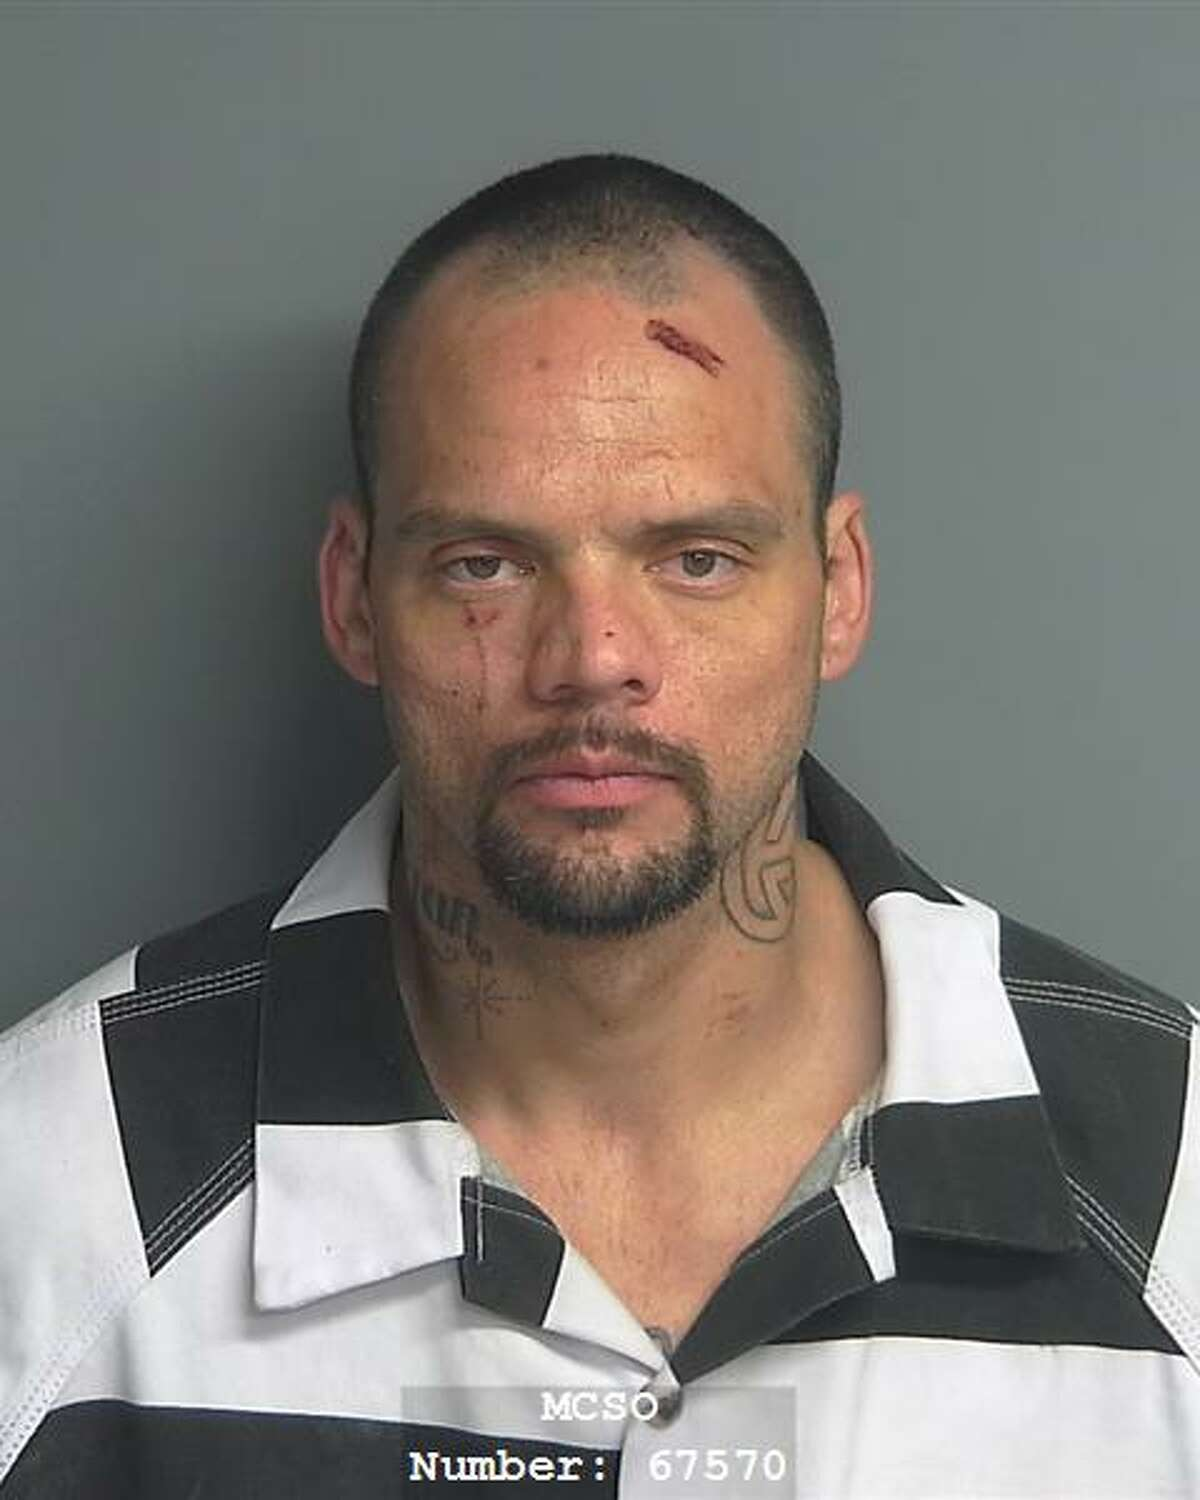 Dylan Gregory Brown, 36, of Magnolia, is being charged with evading arrest with a vehicle, a third-degree felony, burglary of building, unauthorized use of a vehicle, both state jail felonies, resisting arrest, search or transportation, and evading arrest, both Class A misdemeanors.